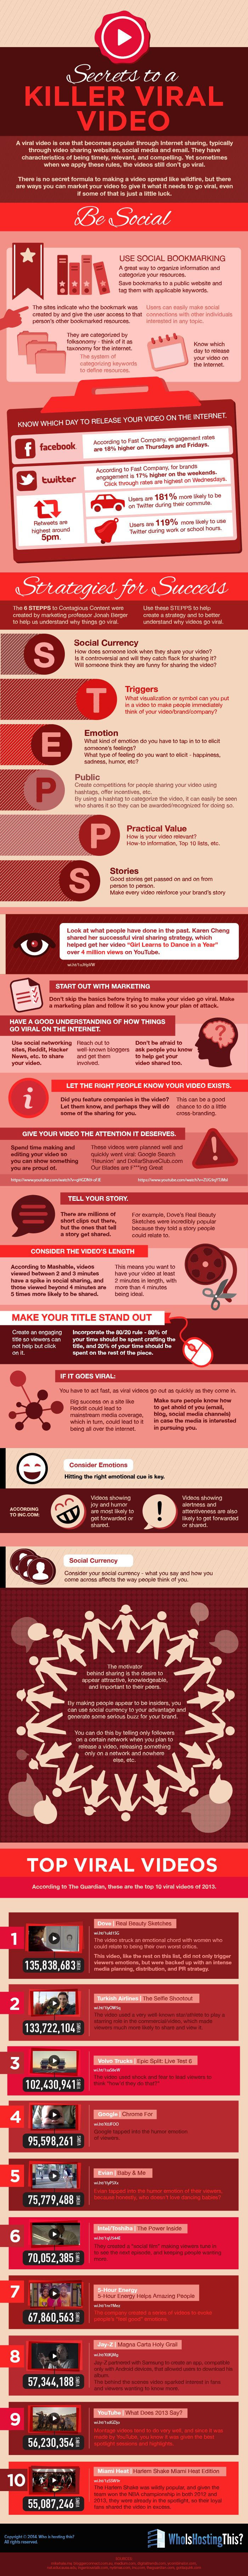 Secrets to a killer viral video #infographic